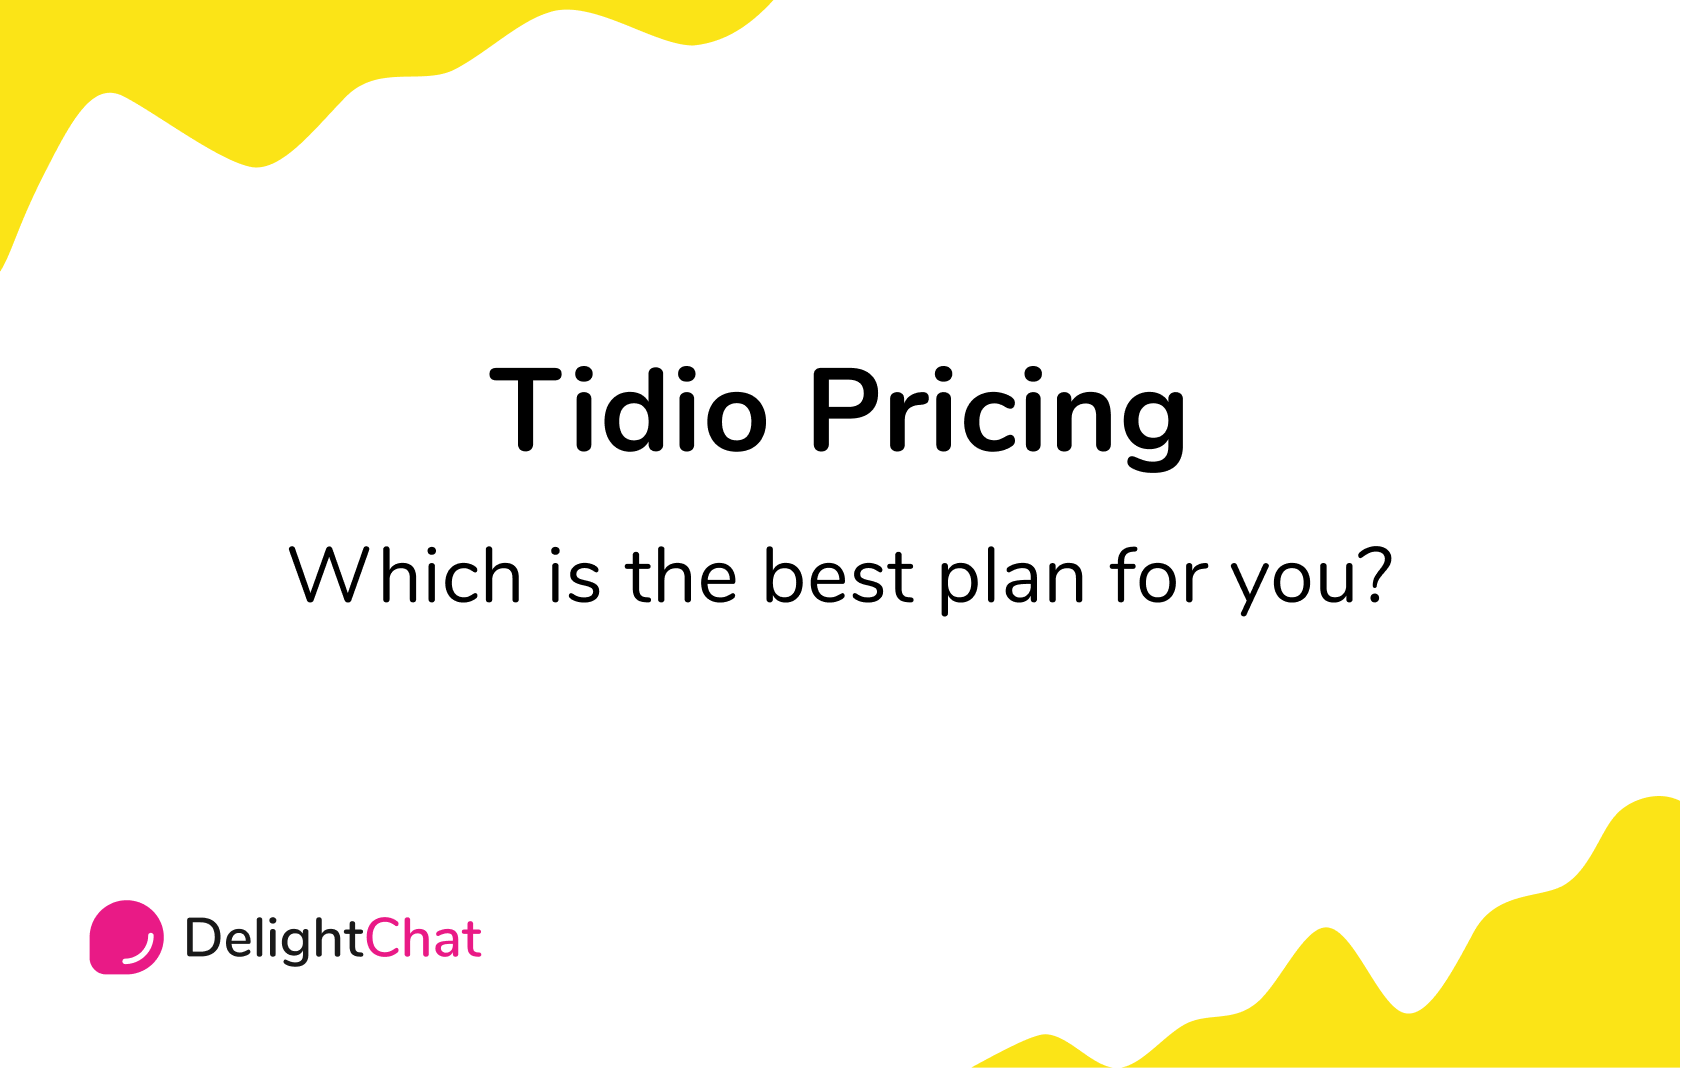 Tidio Pricing: Which is the Best Plan for You?